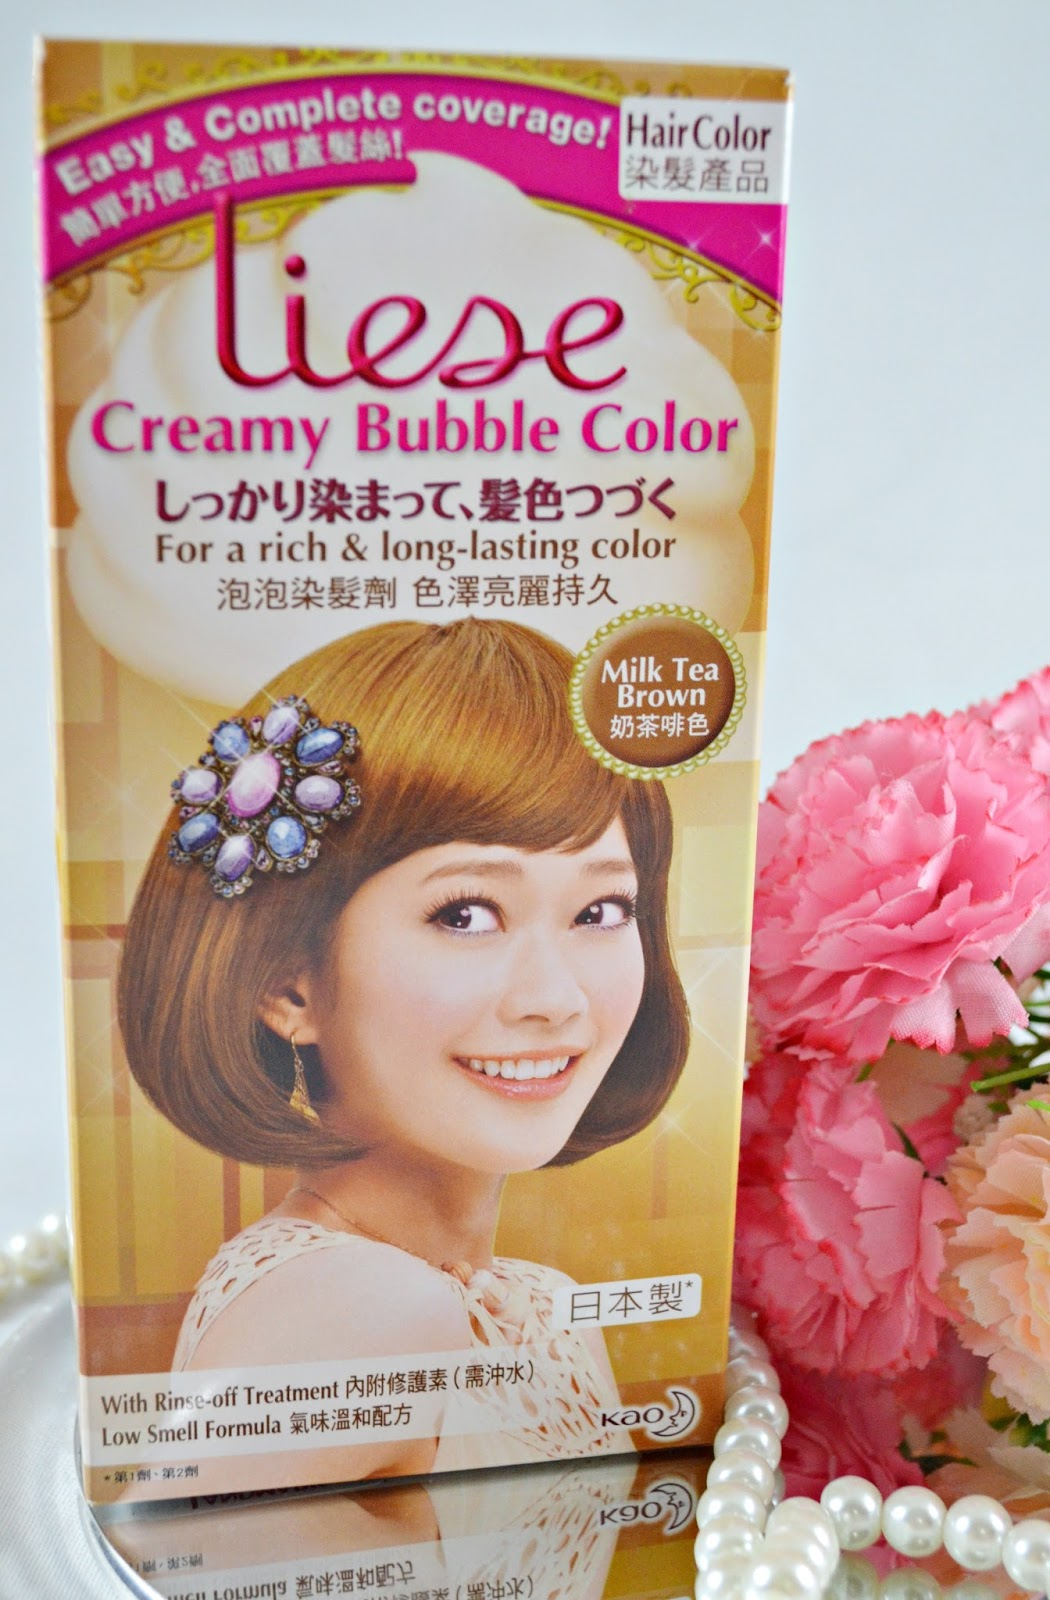 Liese Creamy Bubble Color Milk Tea Brown All About Beauty 101